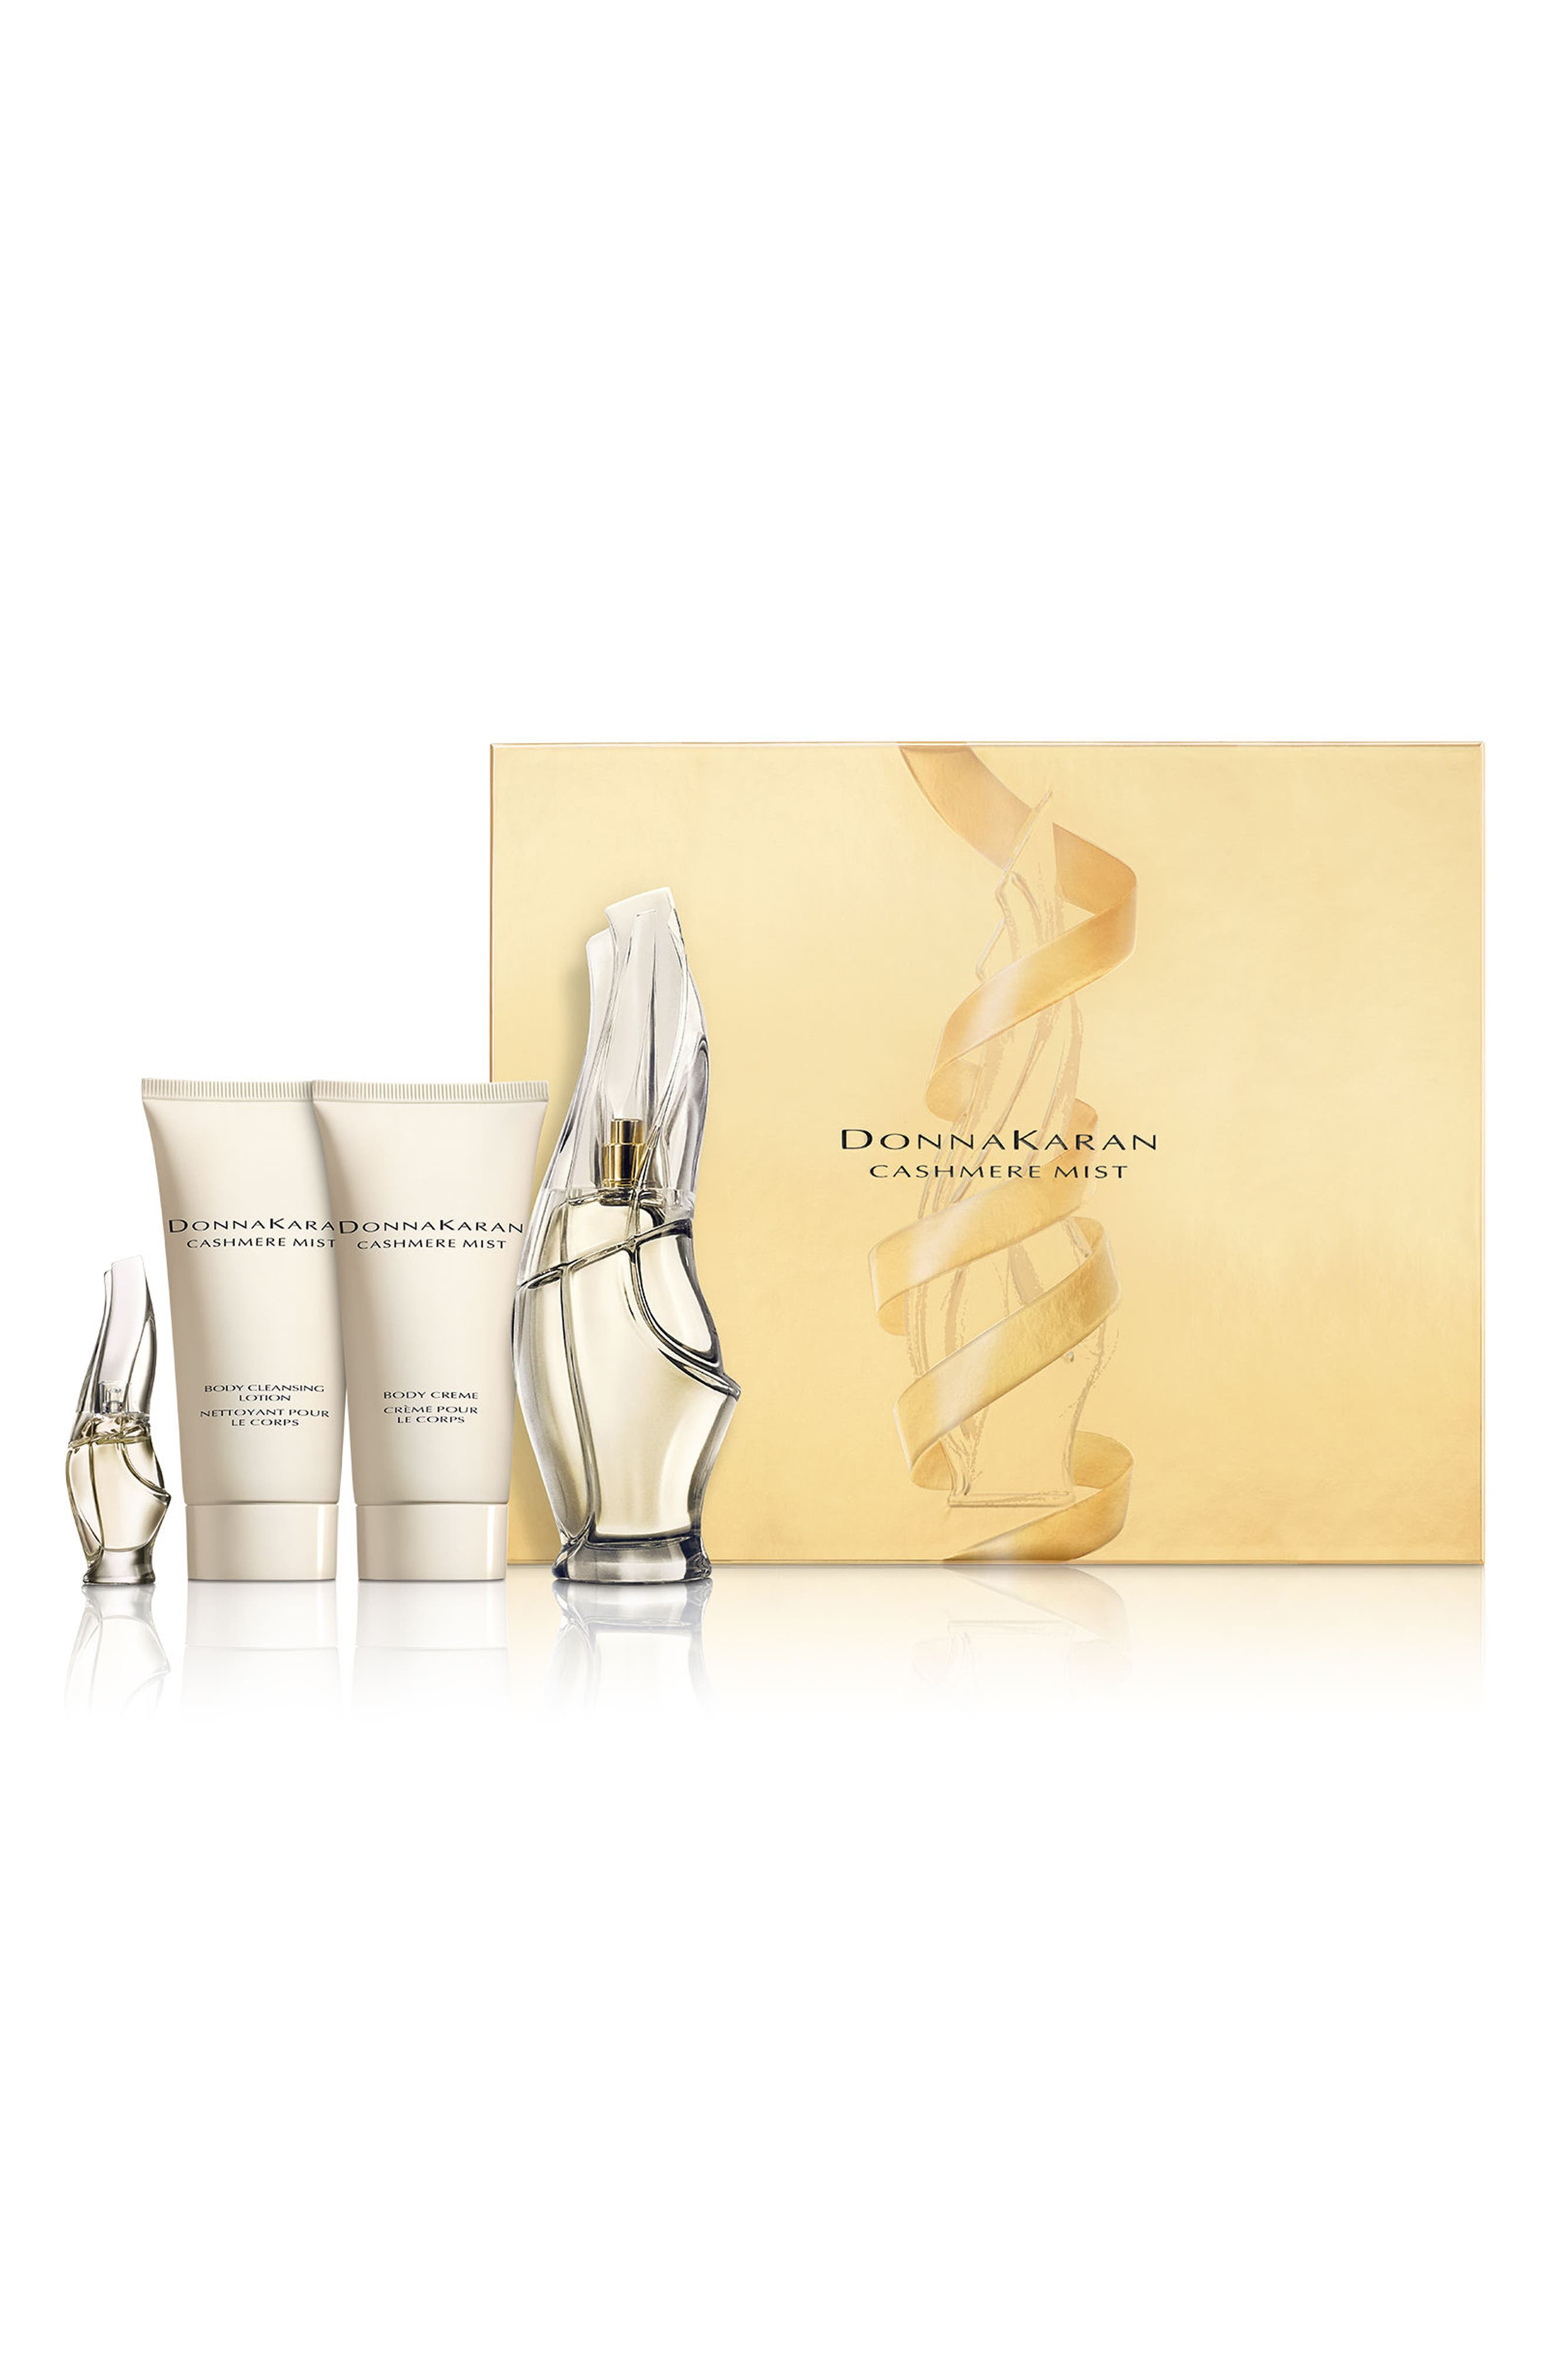 Donna Karan Cashmere Mist Essentials Set ($176 Value)